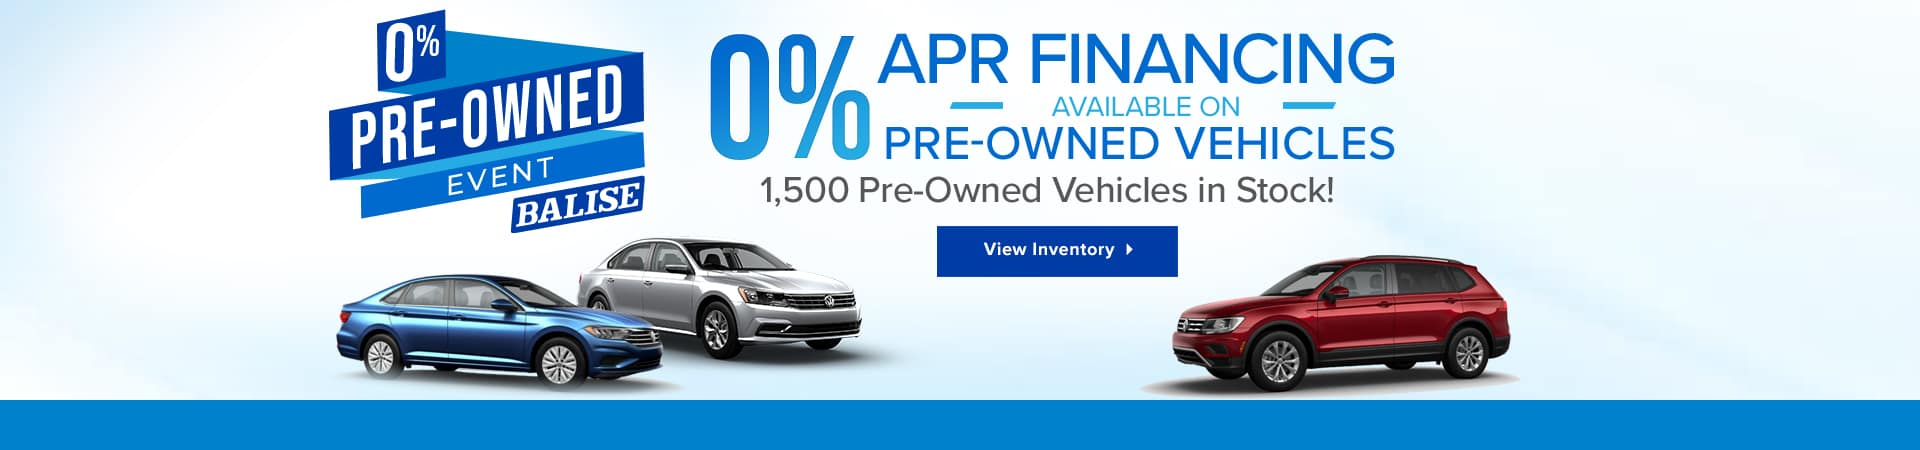 Zero percent down on pre-owned vehicles at Balise Volkswagen